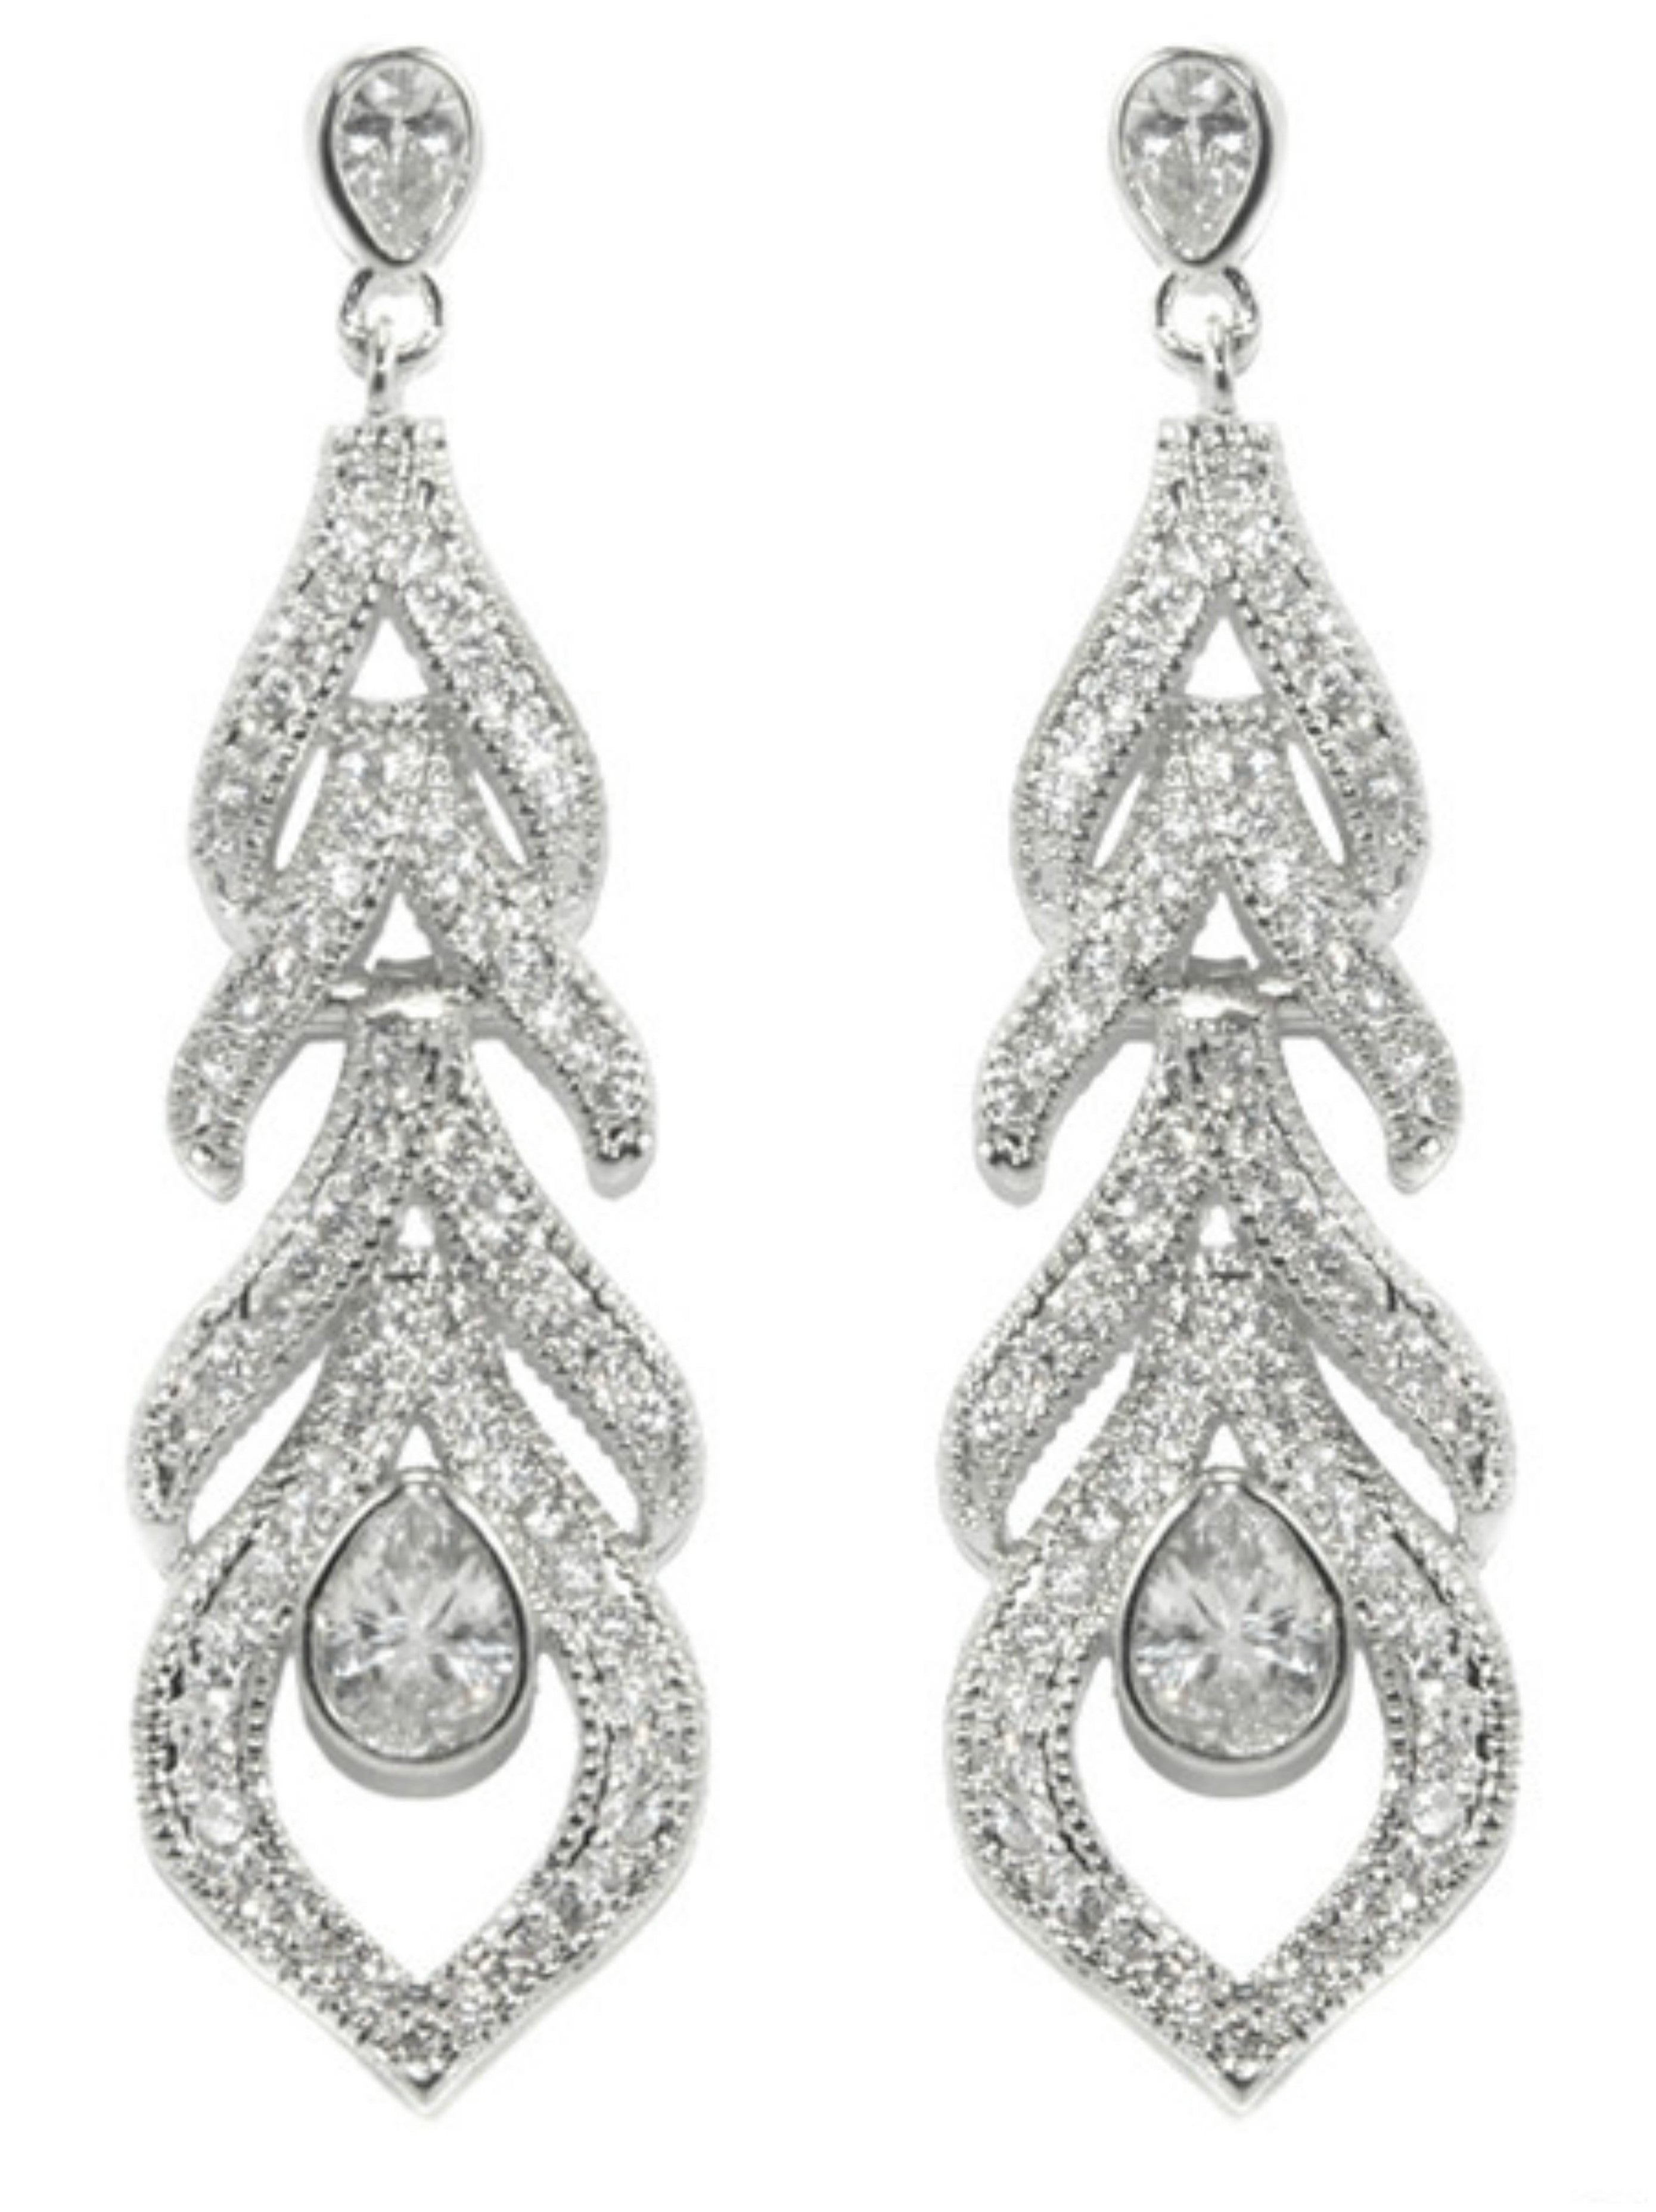 334c3de4a Home > Products > Calliope CZ Feather Dangle Chandelier Earrings | Cubic  Zirconia